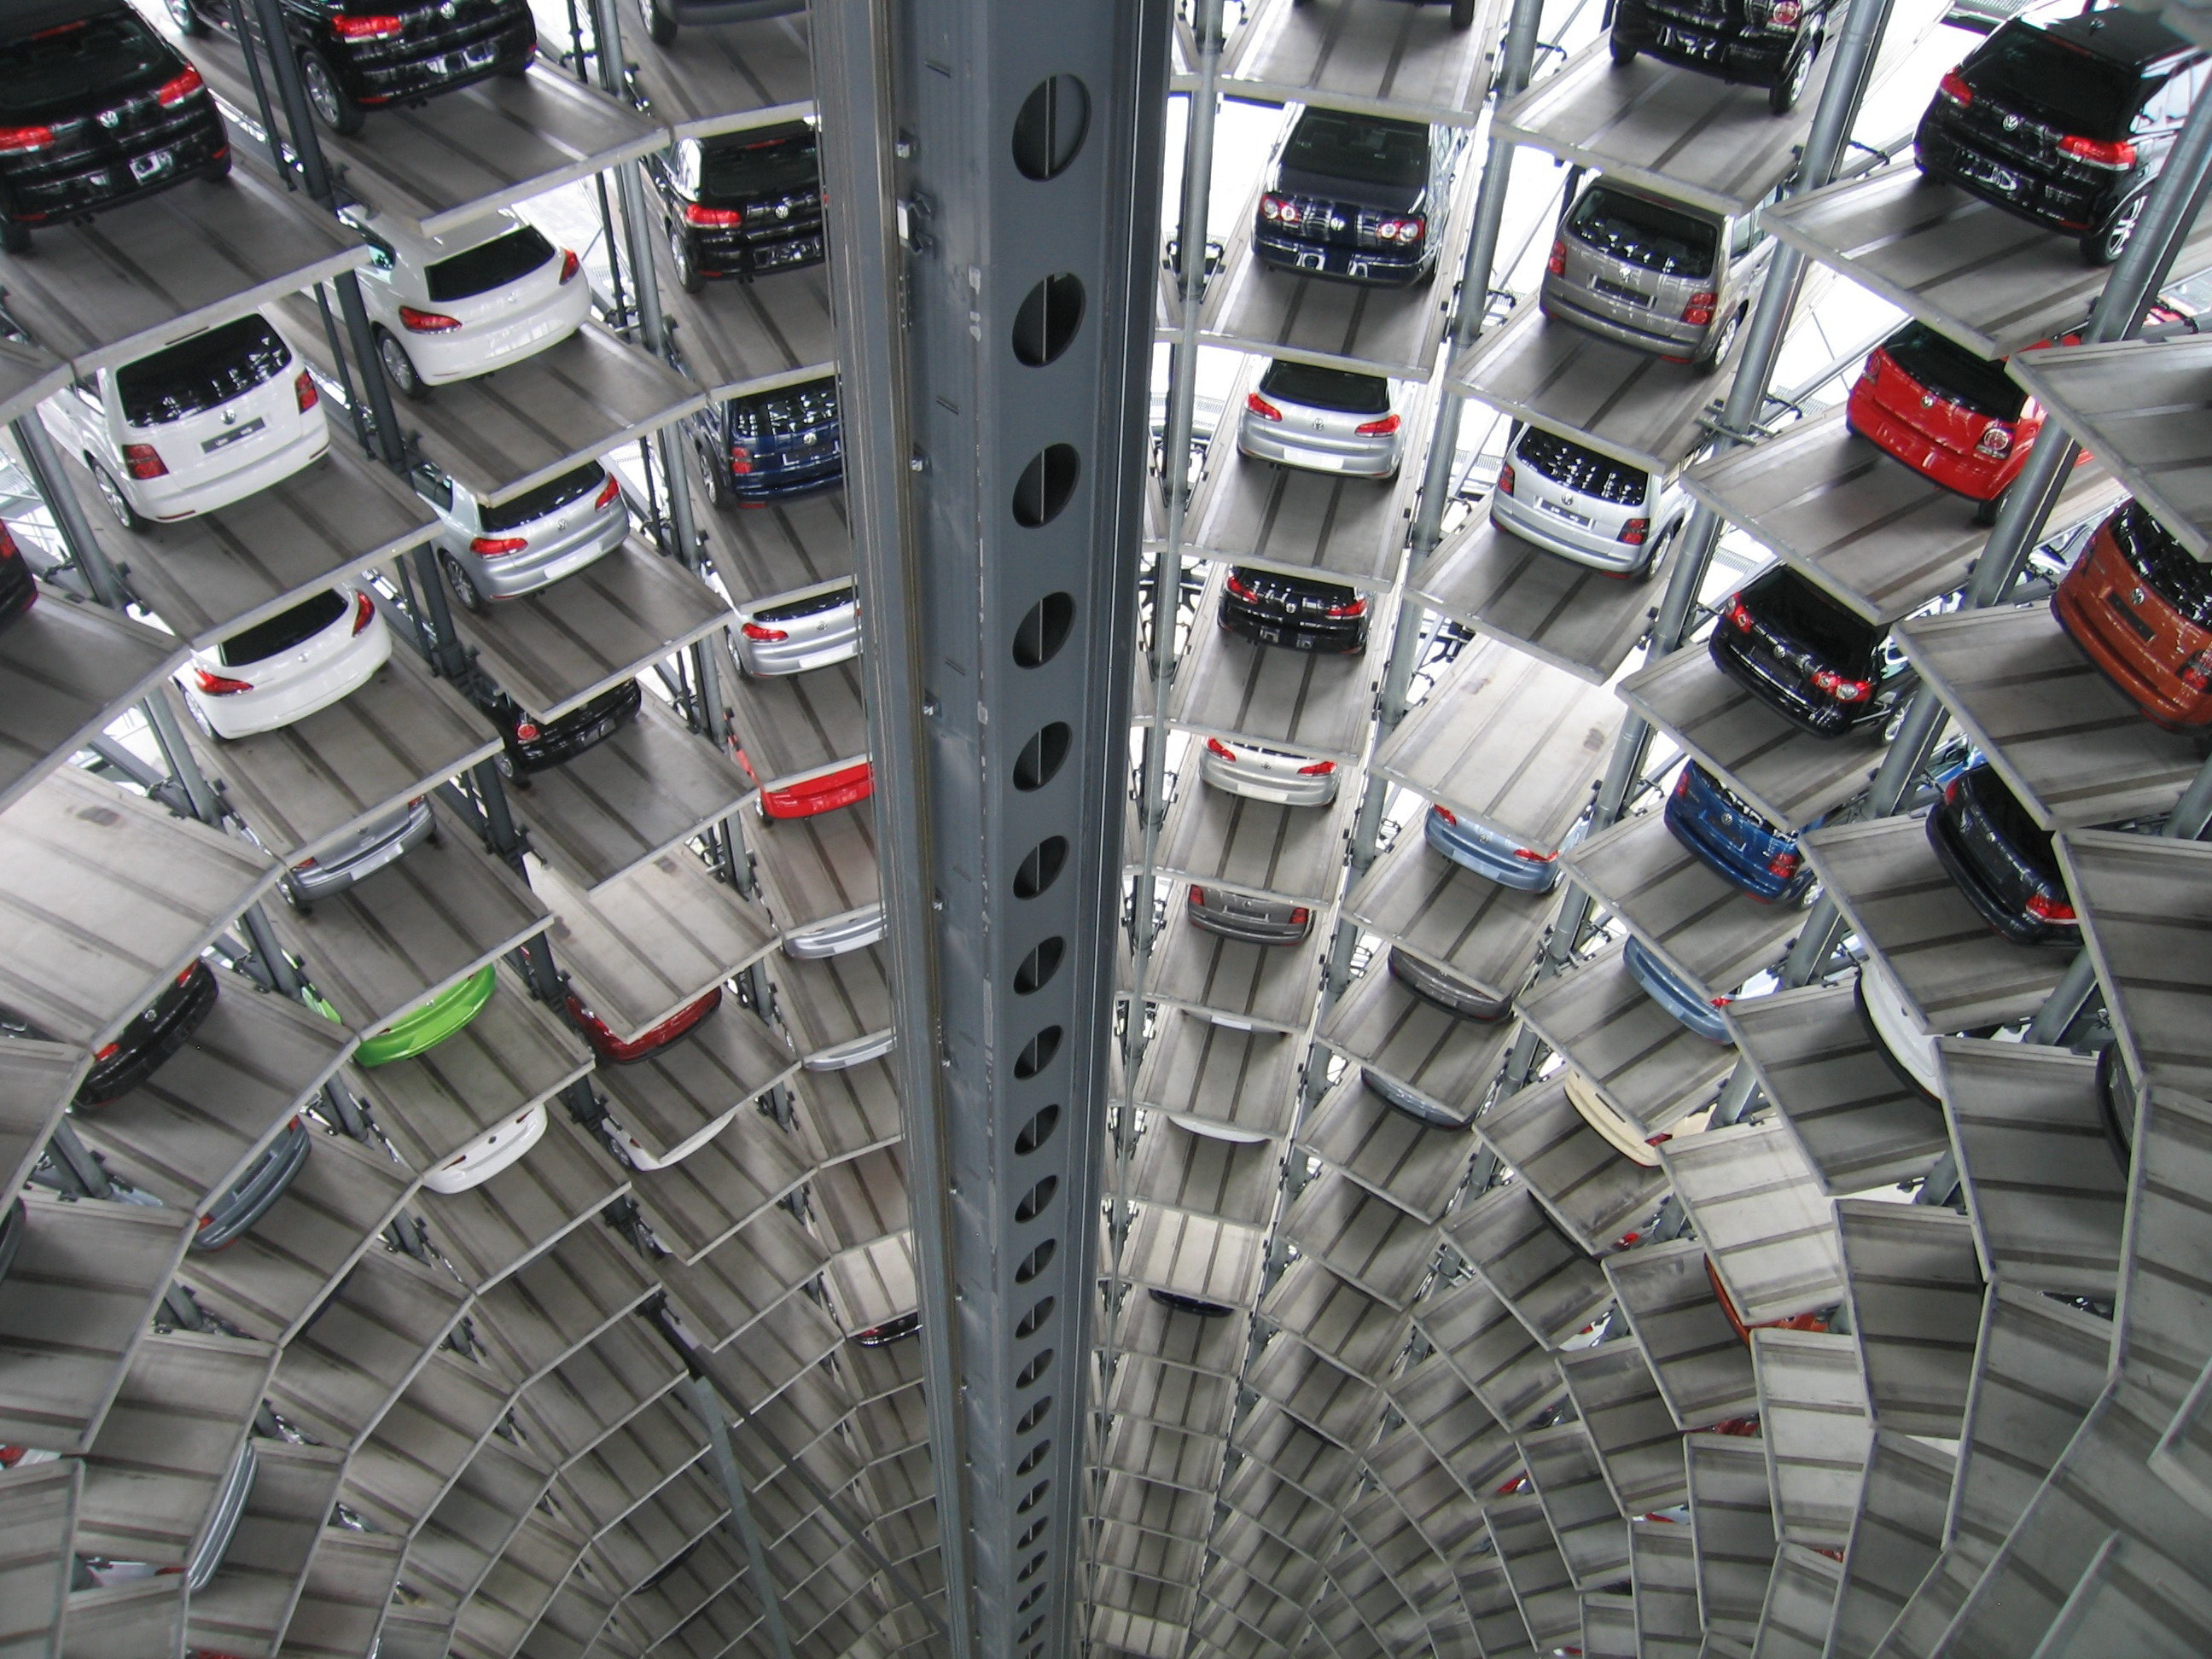 Auto Industry Fights Tariffs, Labor Challenges to Stay Profitable